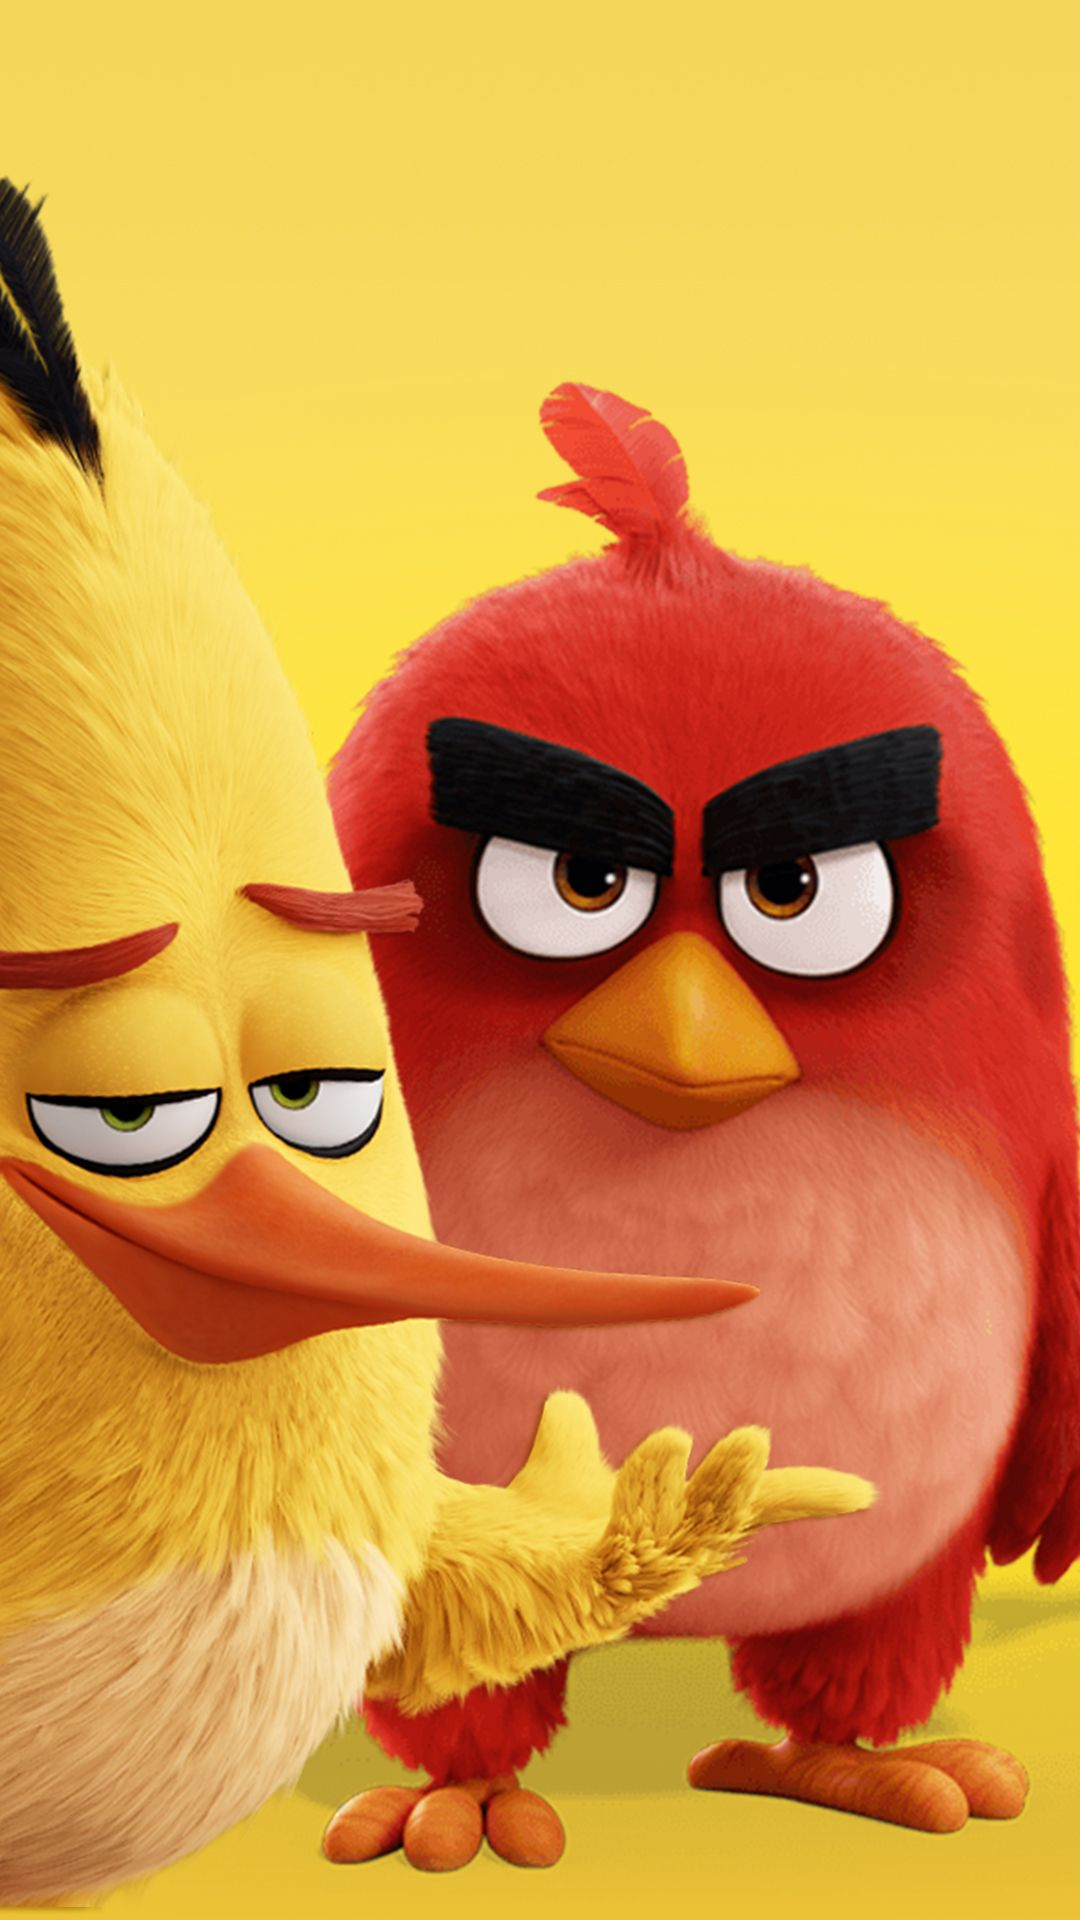 Angry Birds Wallpaper Free Download For Cellphone Wallpaper For Cartoon Wallpaper Cute Cartoon Wallpapers Angry Birds